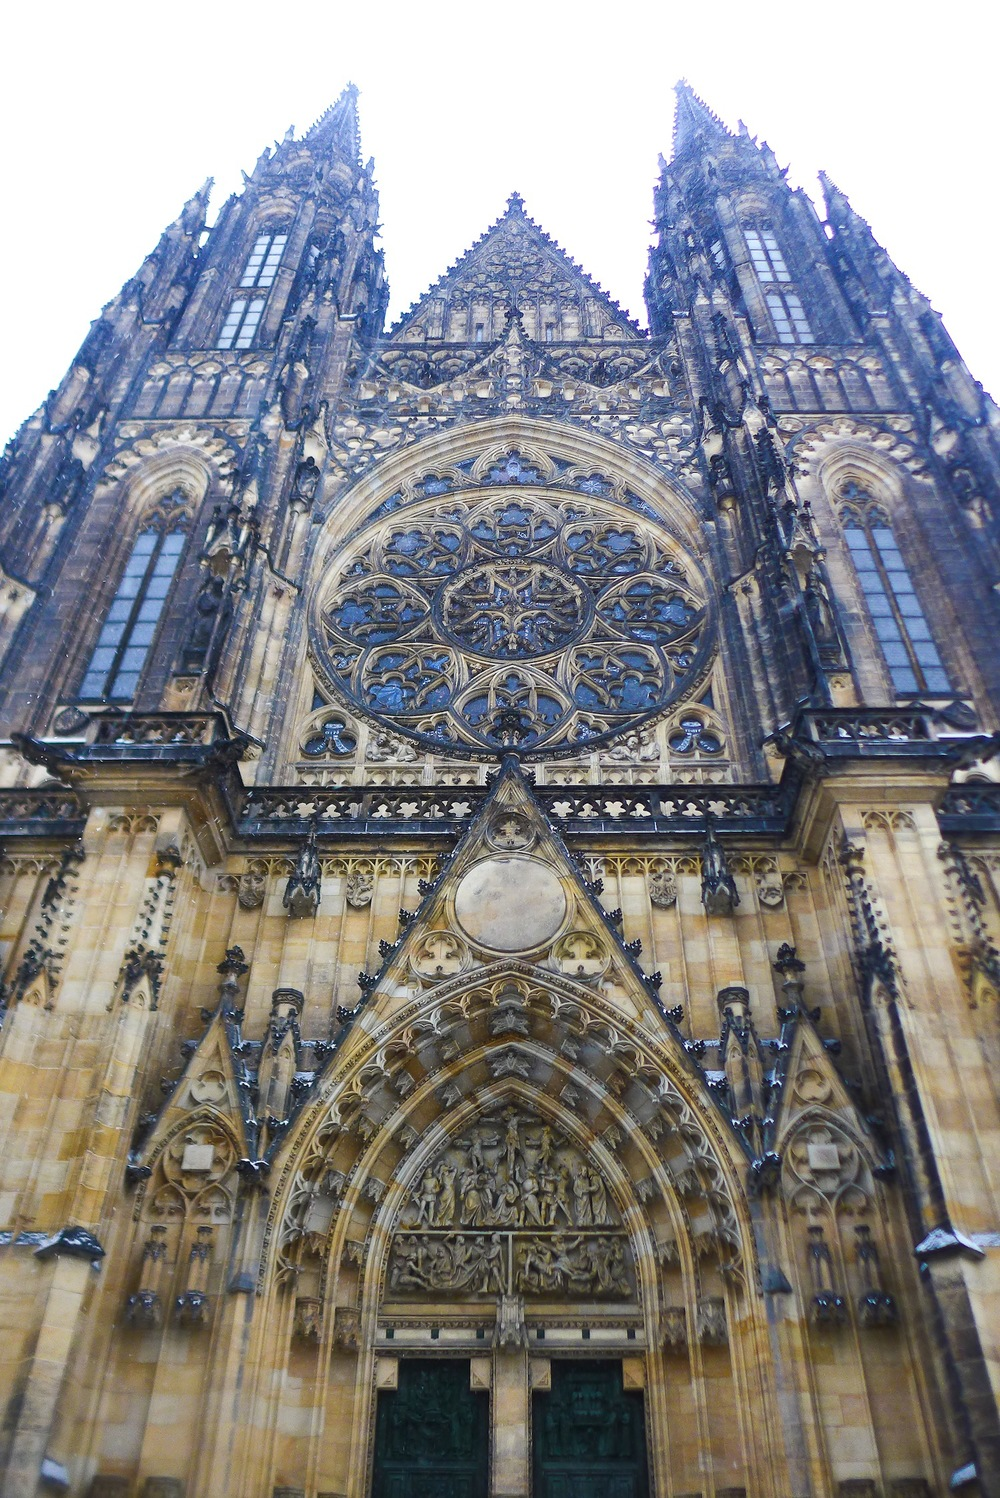 The magnificent Vitus' Cathedral was nothing short of what I expected it to be. More so, it surpassed my wildest expectations. Truly a Gothic masterpiece this spiritual symbol of the Czech state is.